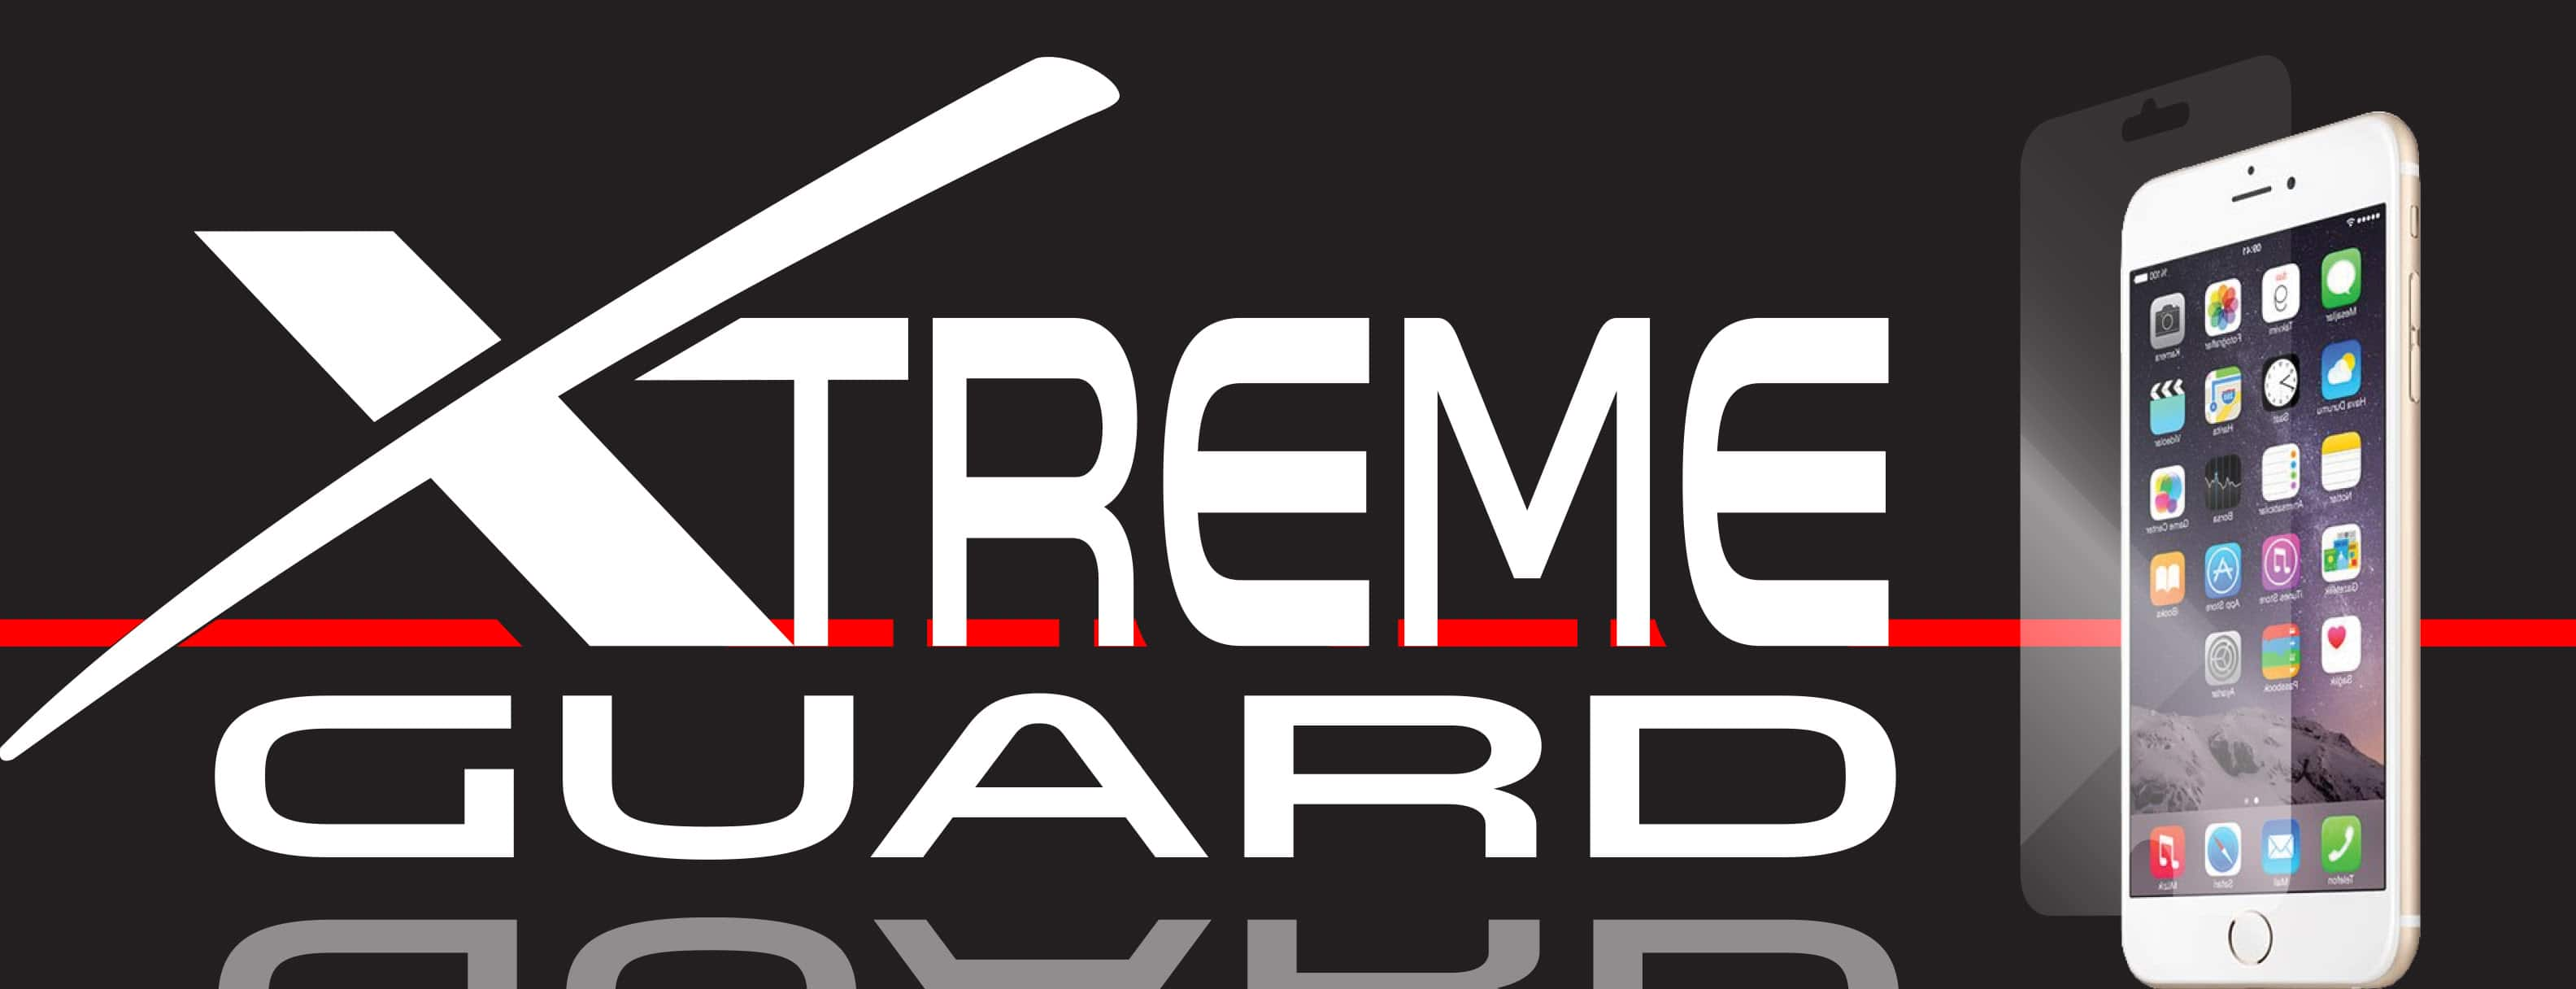 91% OFF SITE-WIDE @ XtremeGuard